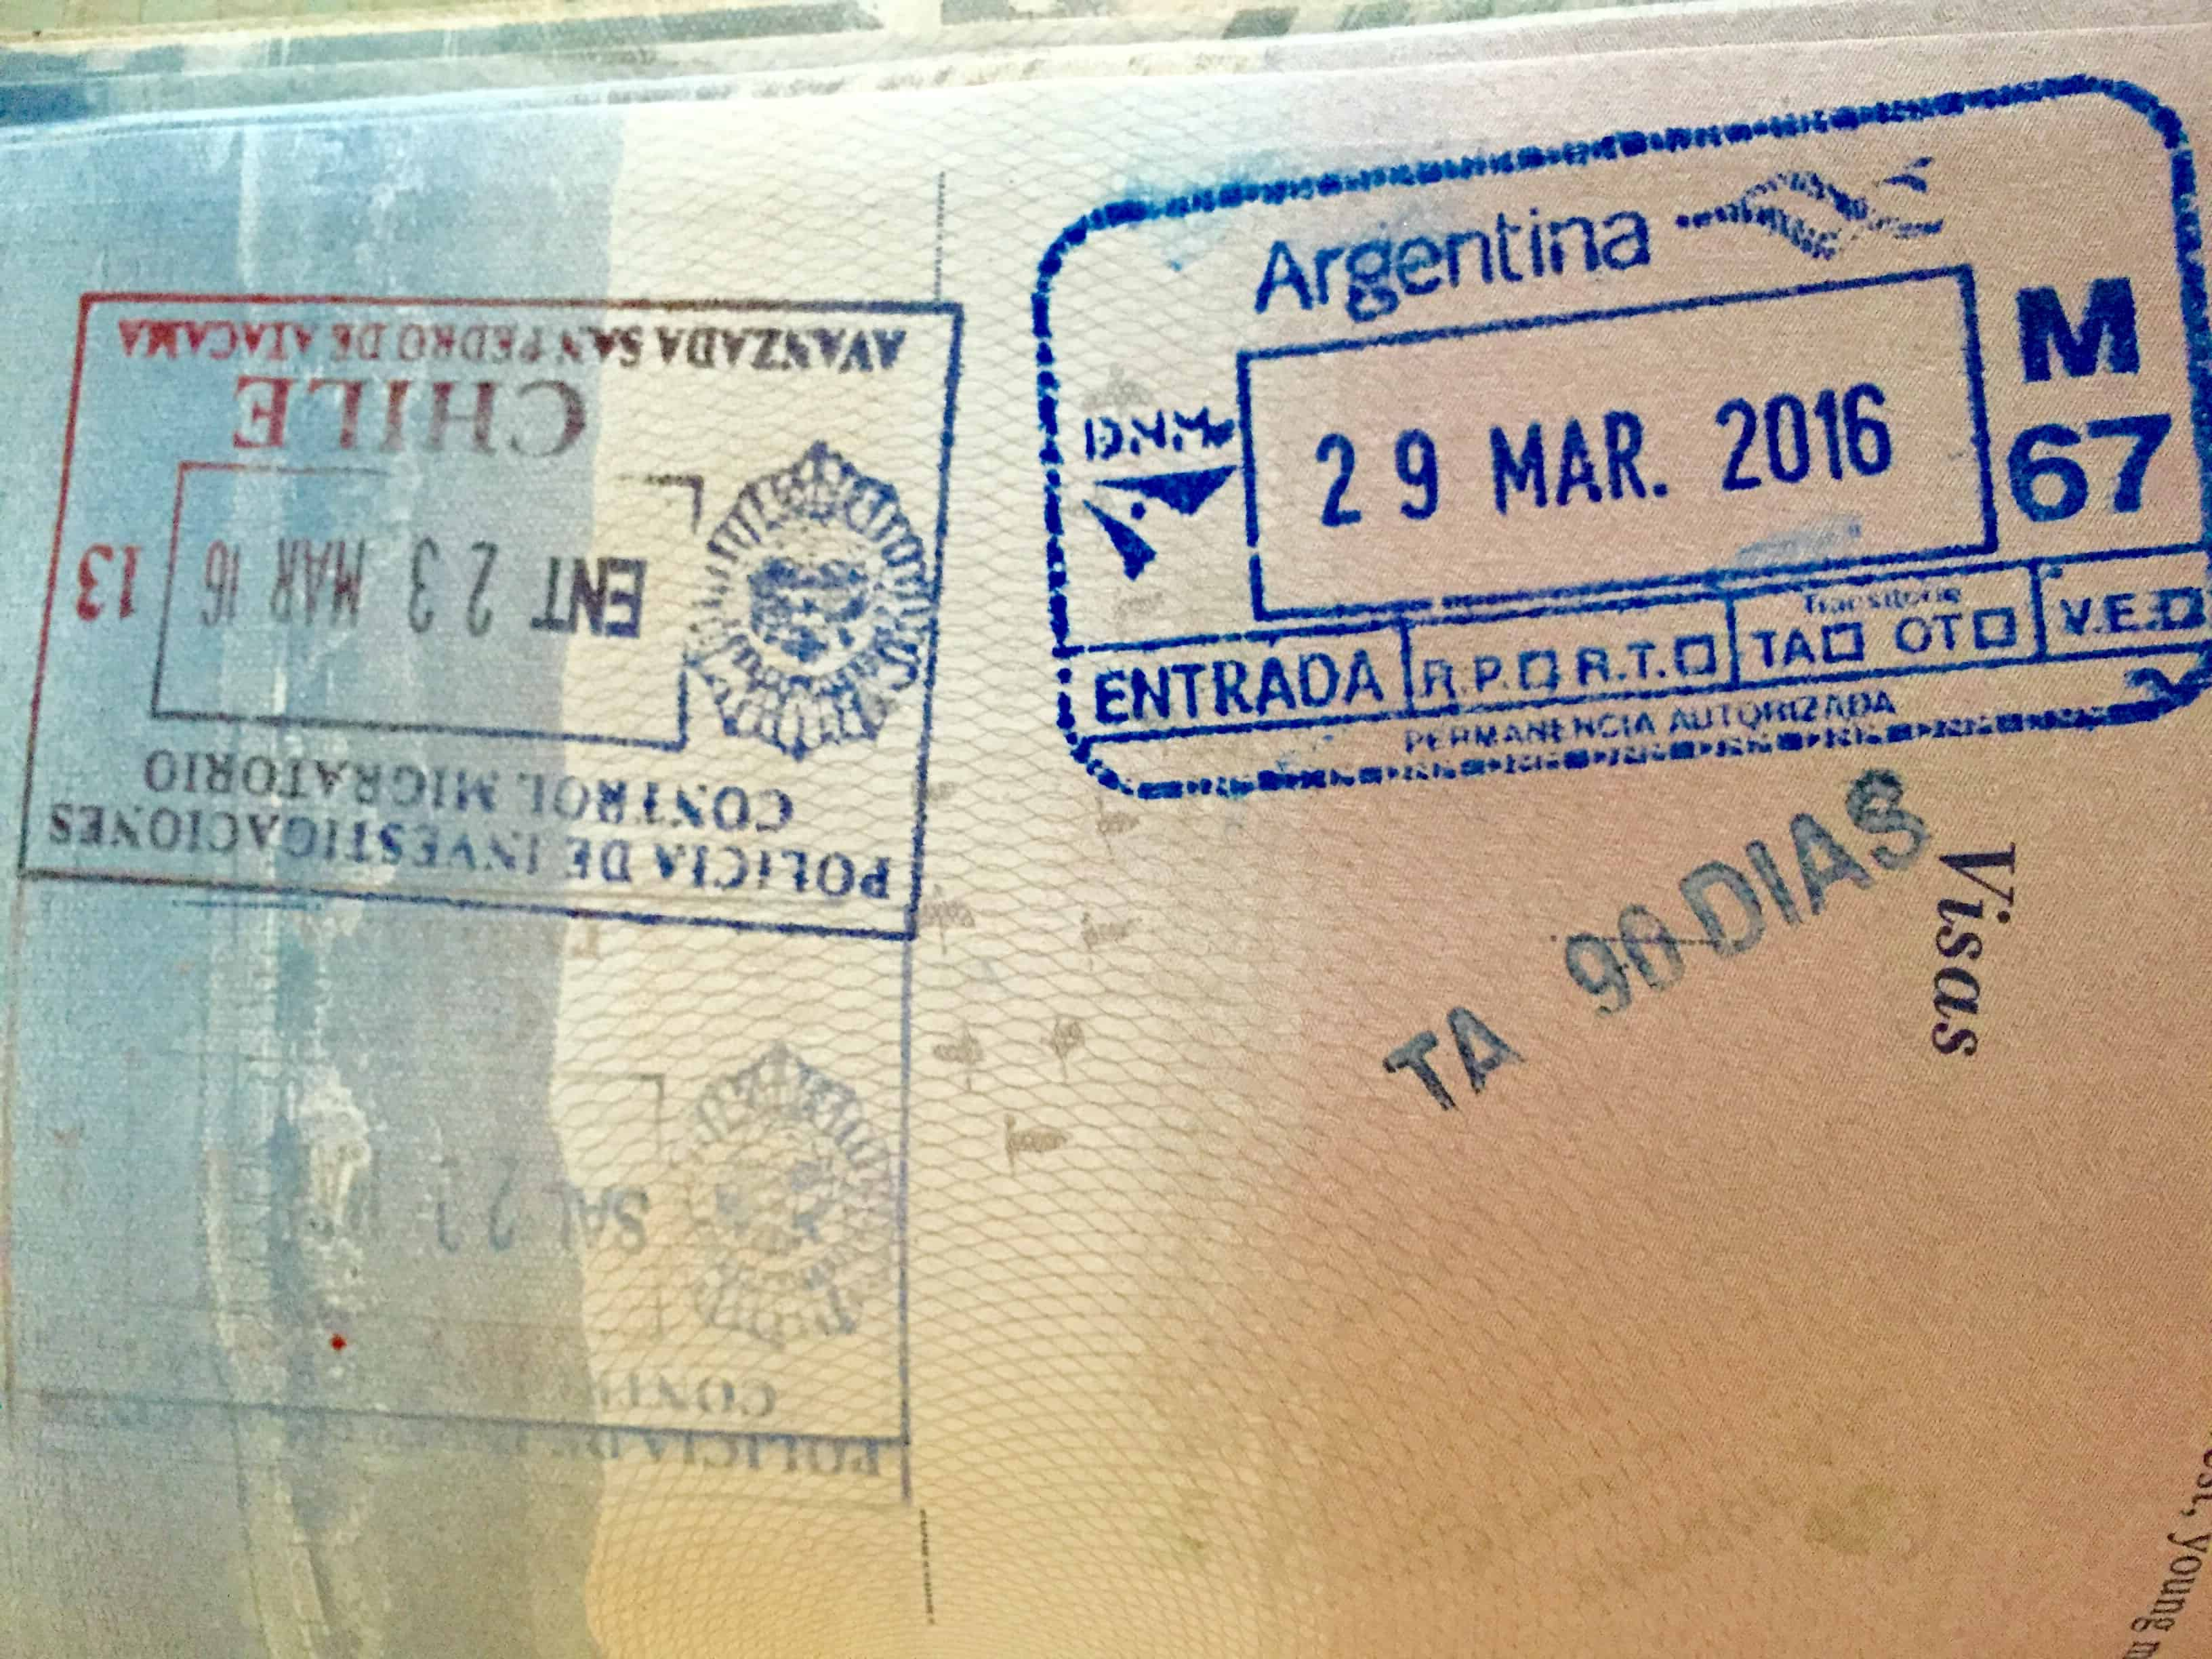 South America: 6 things to know before you go